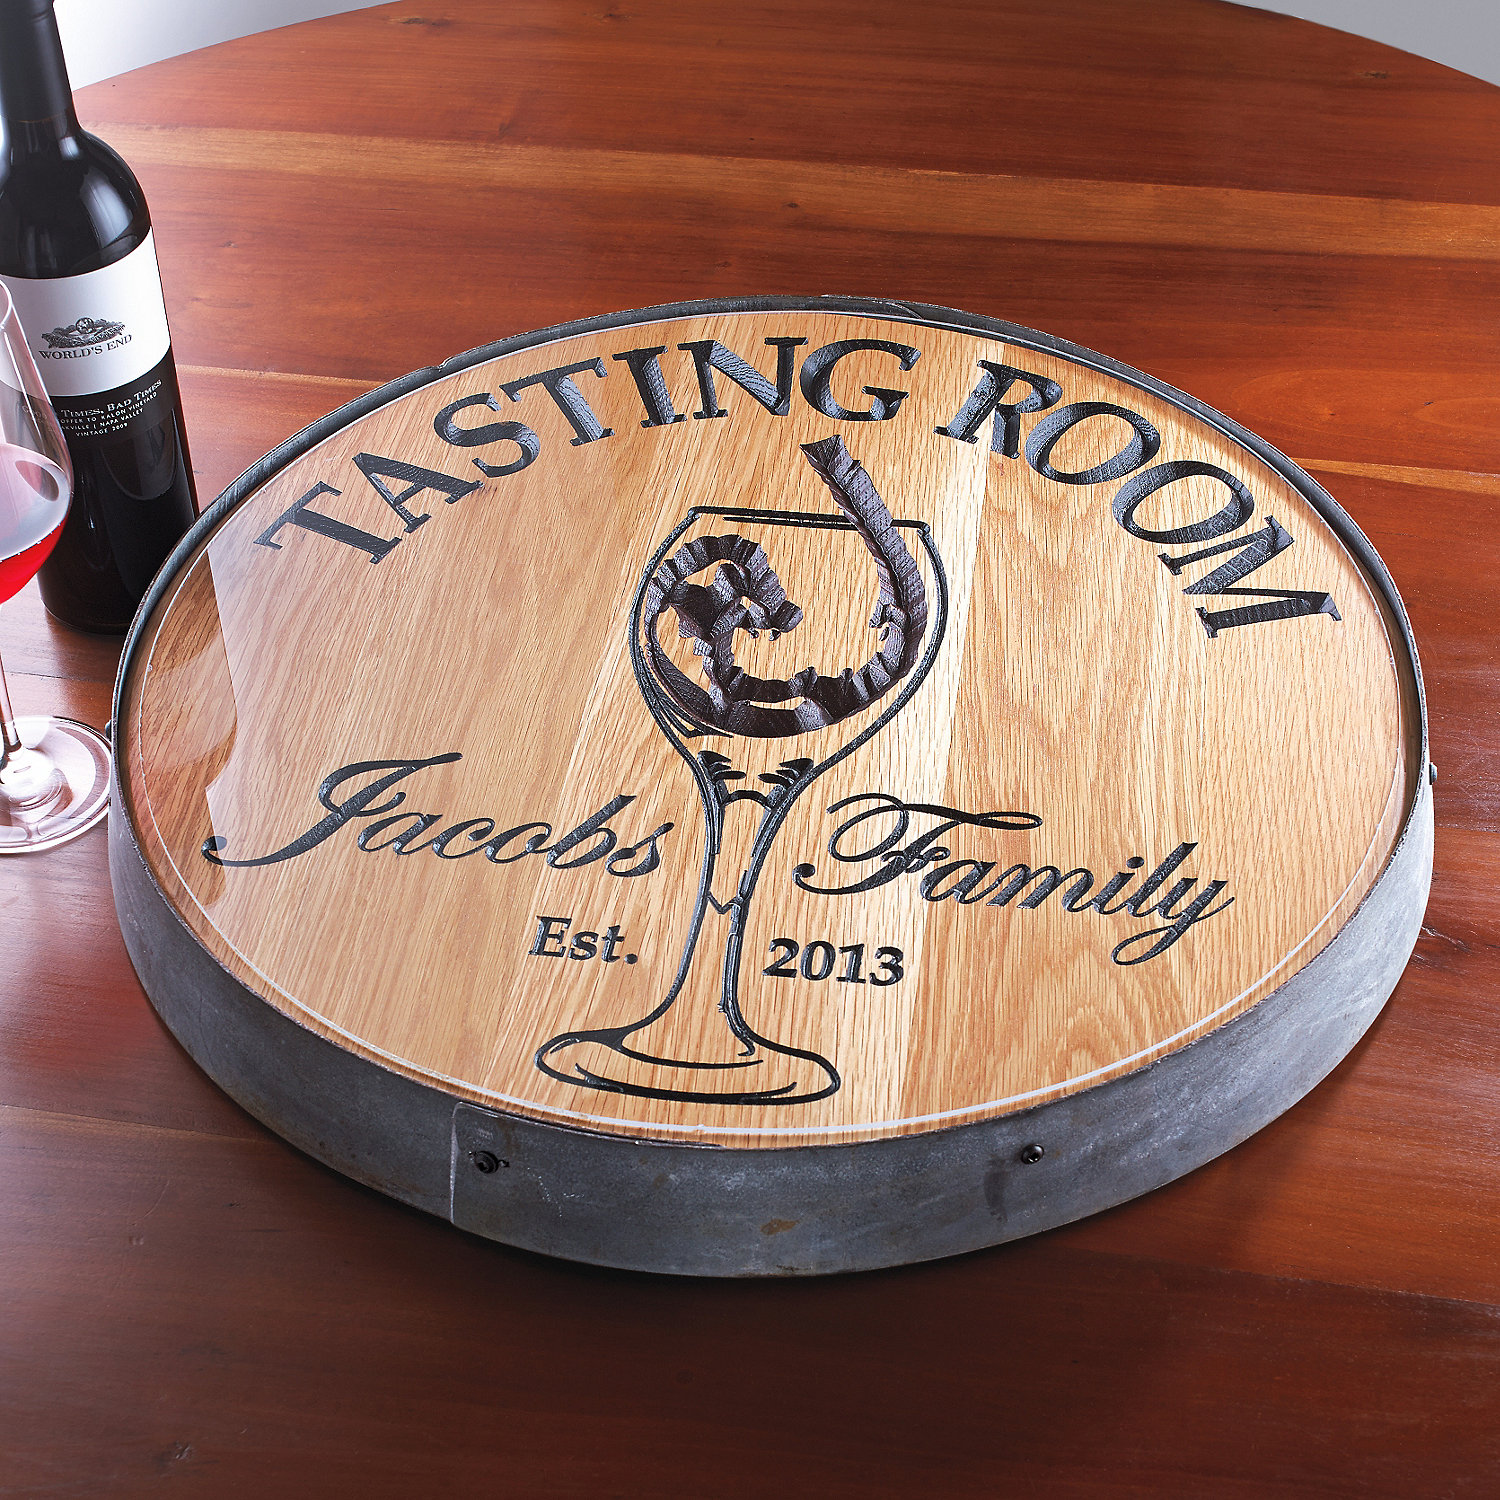 Beautiful wine barrel lazy susan for furniture accessories ideas with personalized wine barrel lazy susan